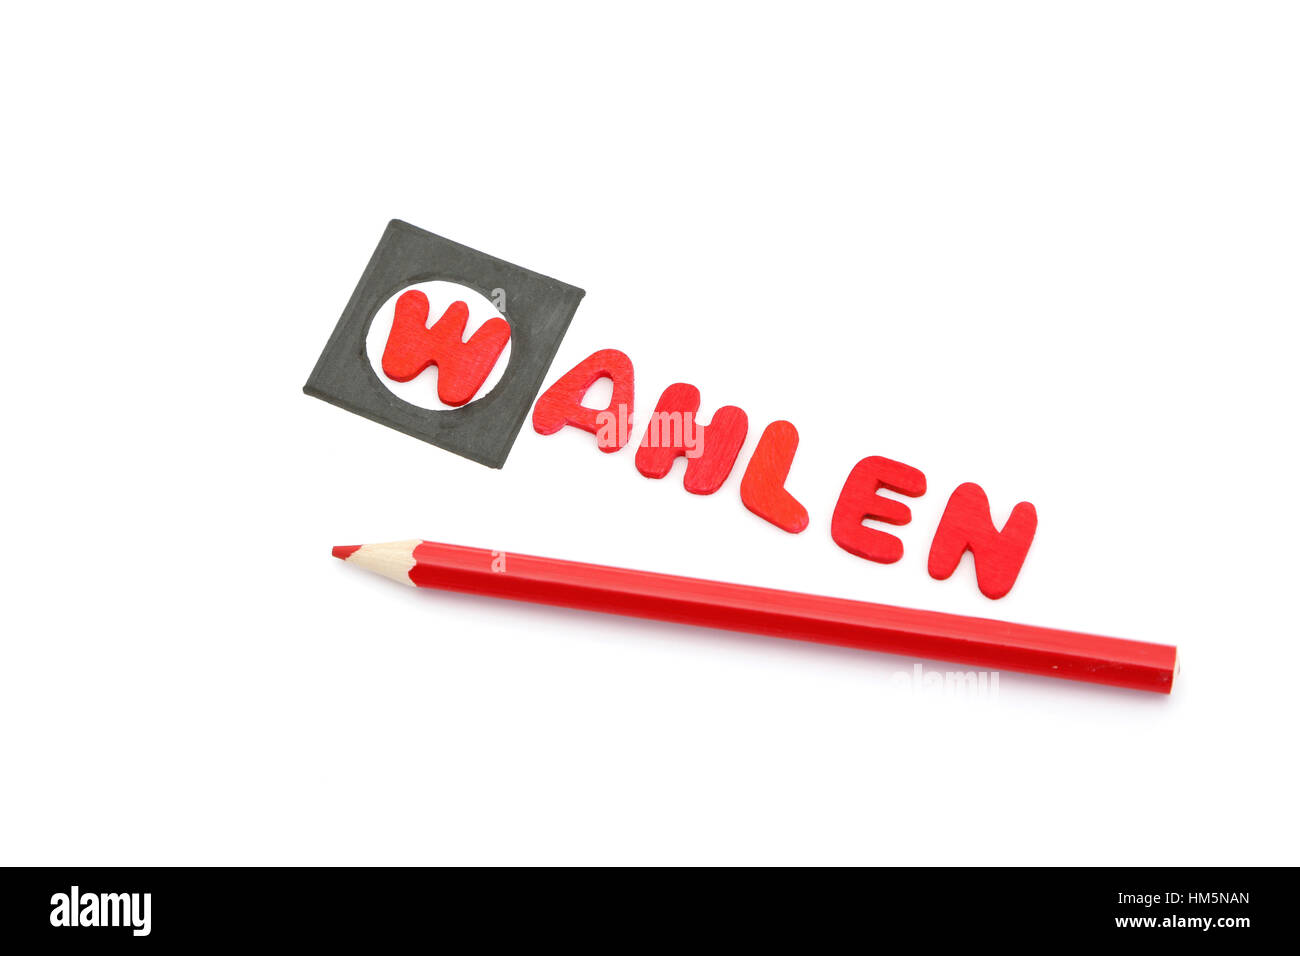 Red pencils and the word wahlen which means elections in german - Stock Image